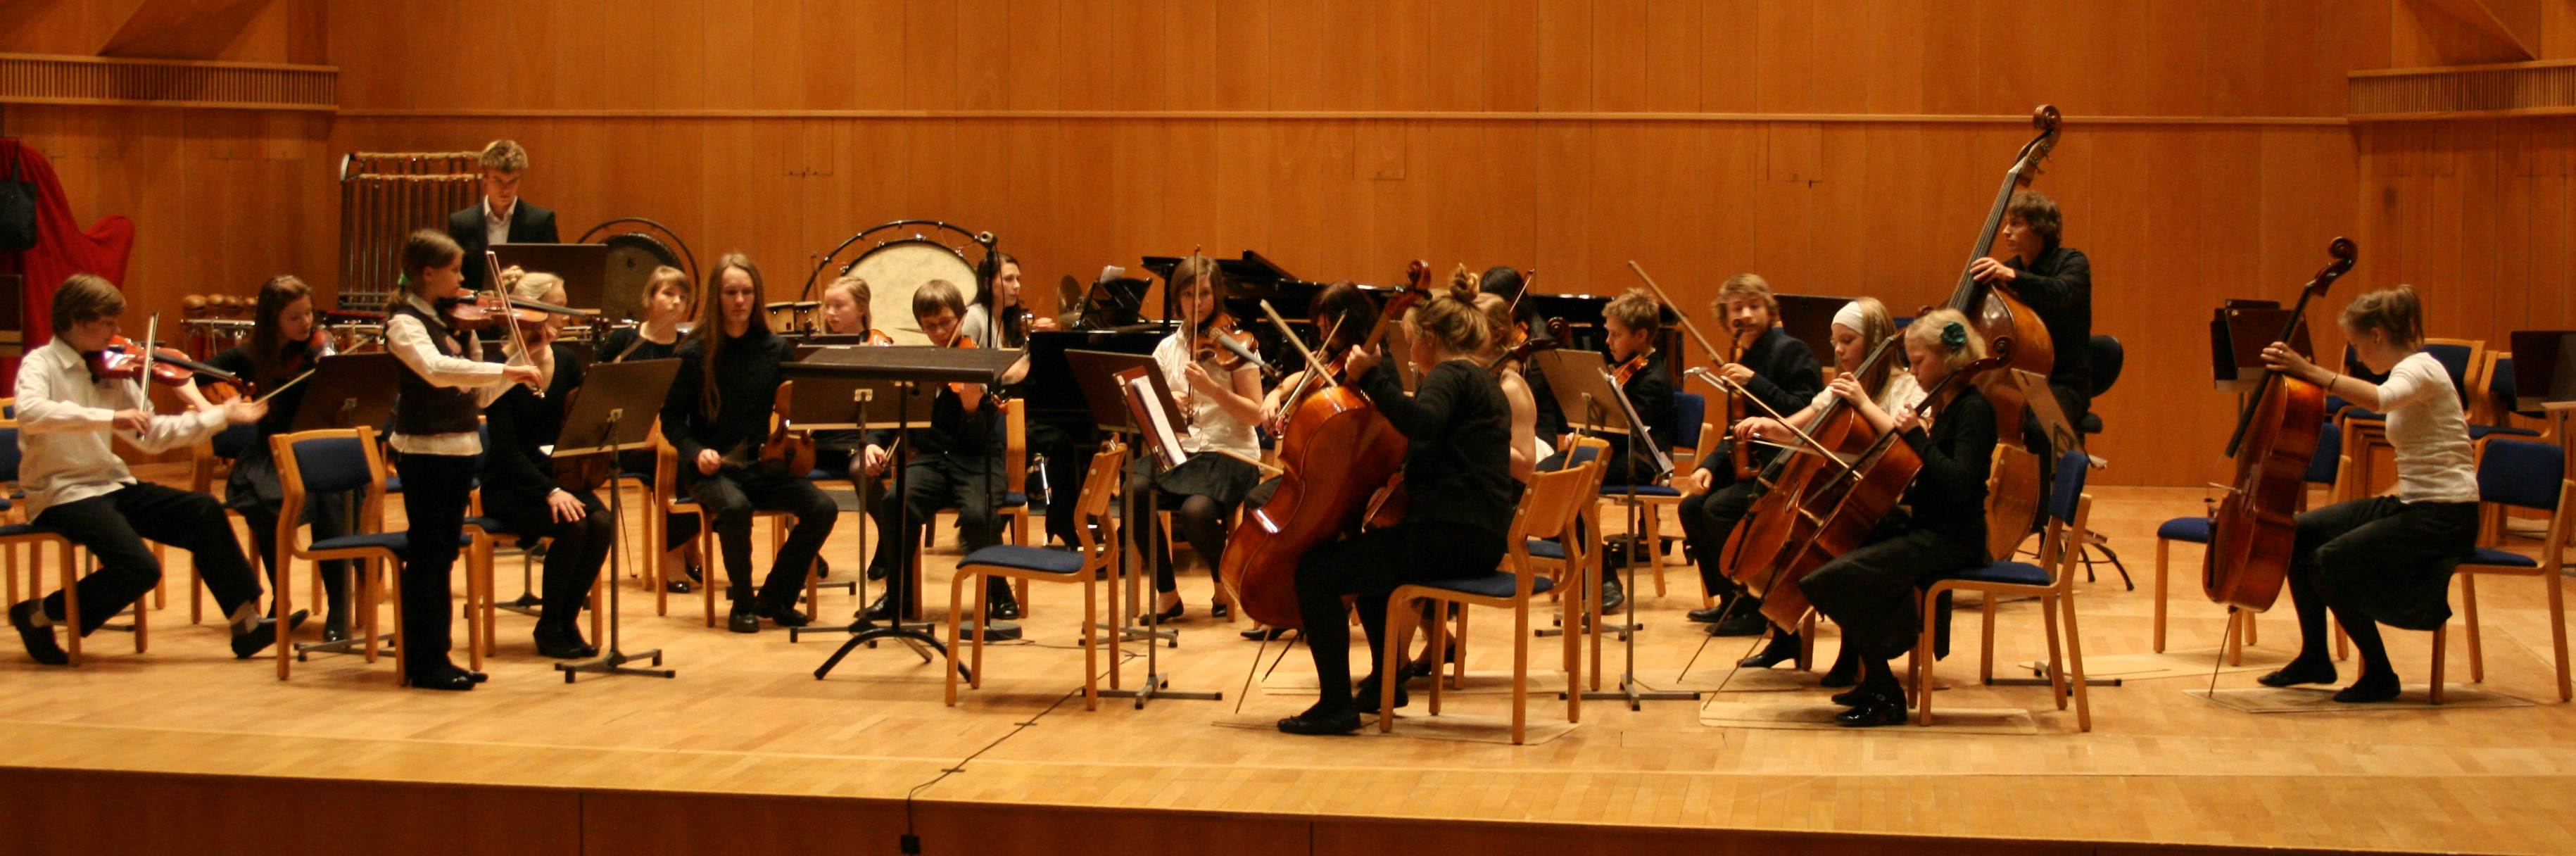 Orch.finlandese